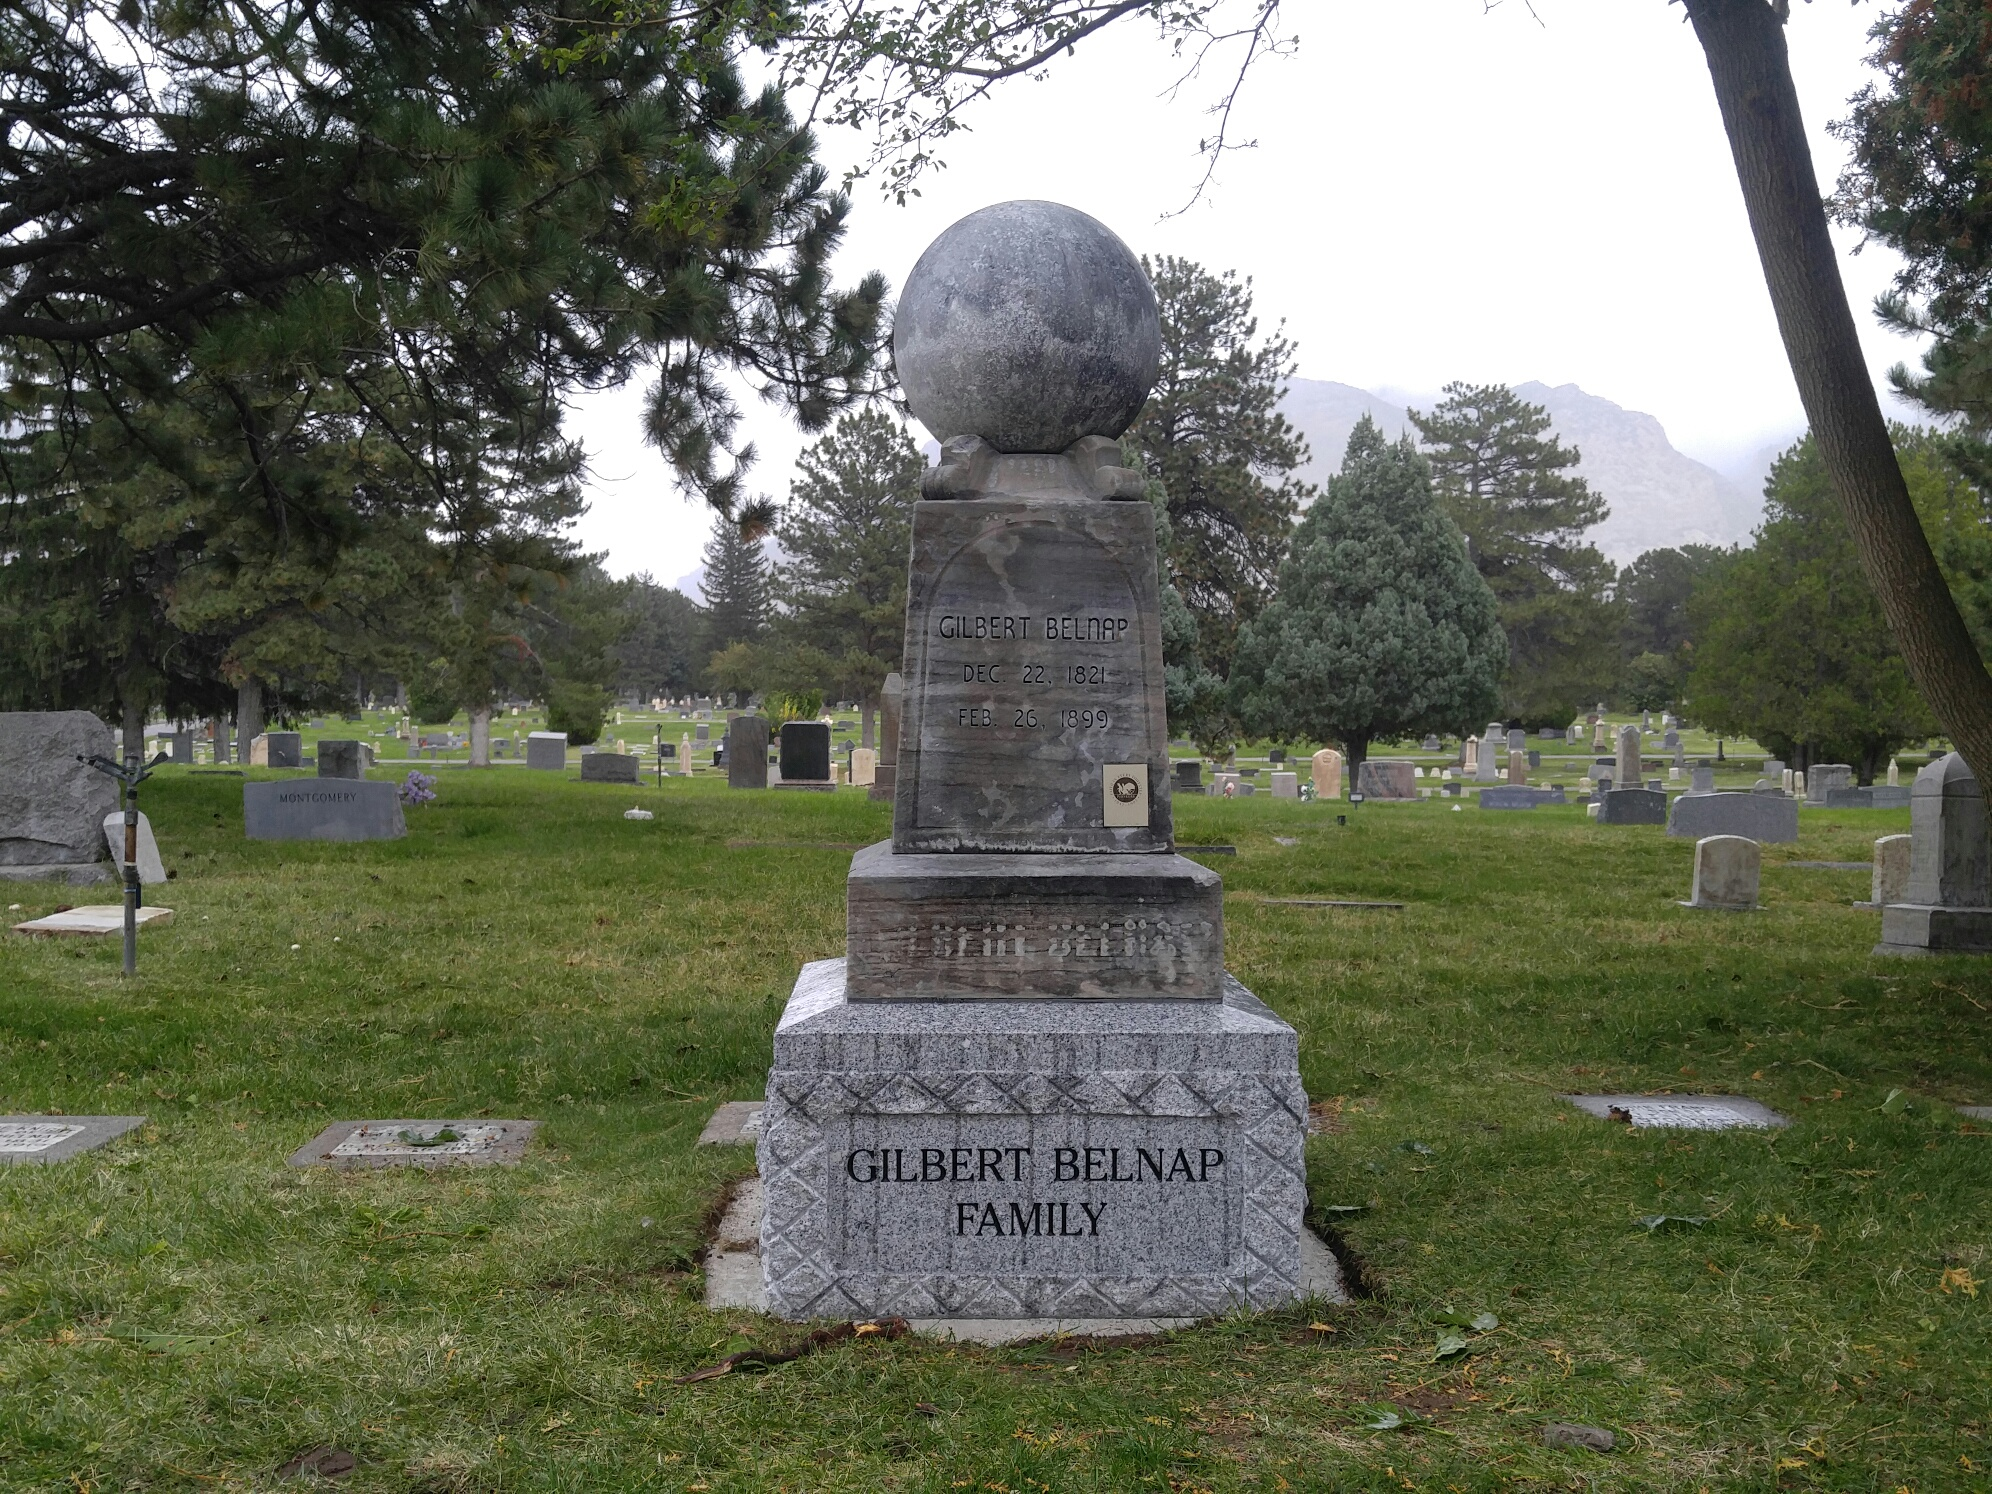 Gilbert Belnap Family Monument Rededication Announcement